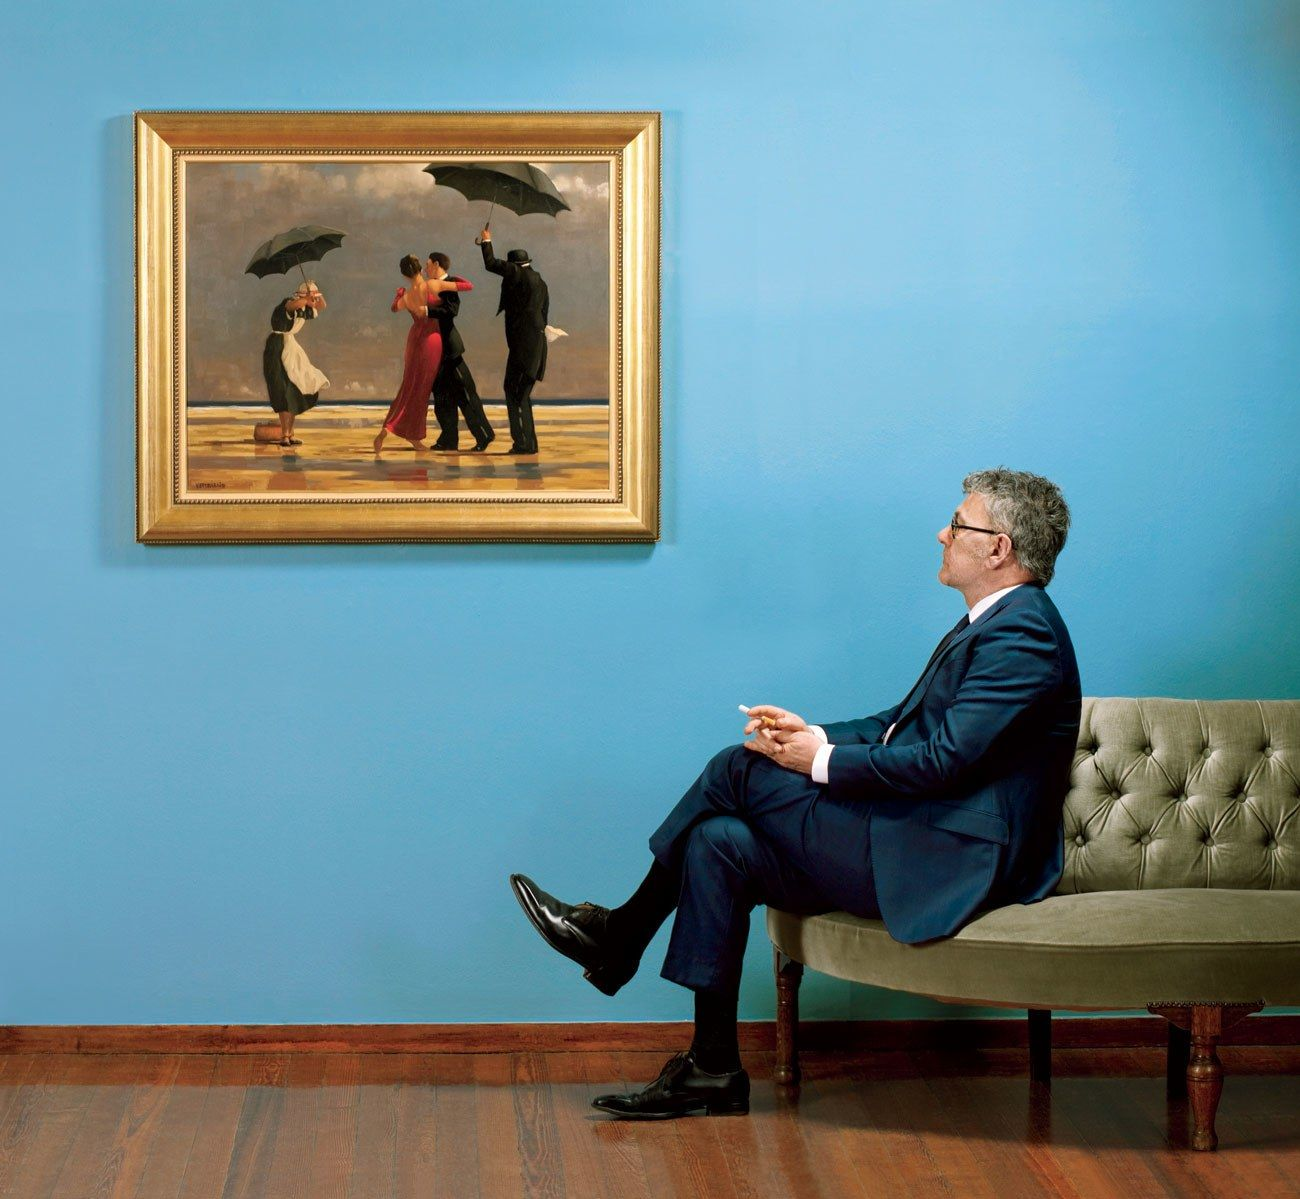 Critics say Jack Vettriano paints brainless erotica. But ever since Vettriano's…